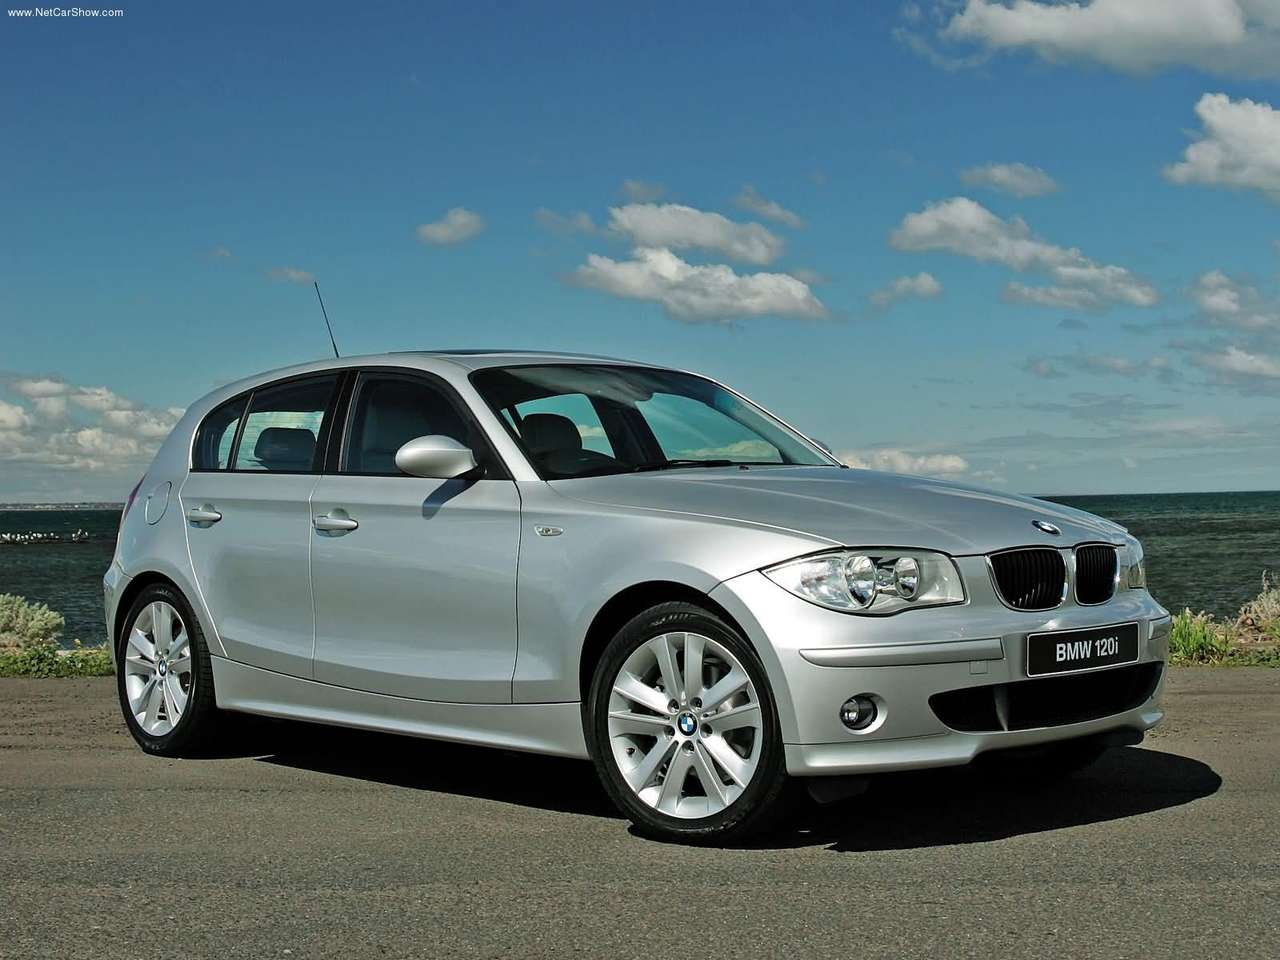 BMW - Auto twenty-first century: 2005 BMW 120i UK Version